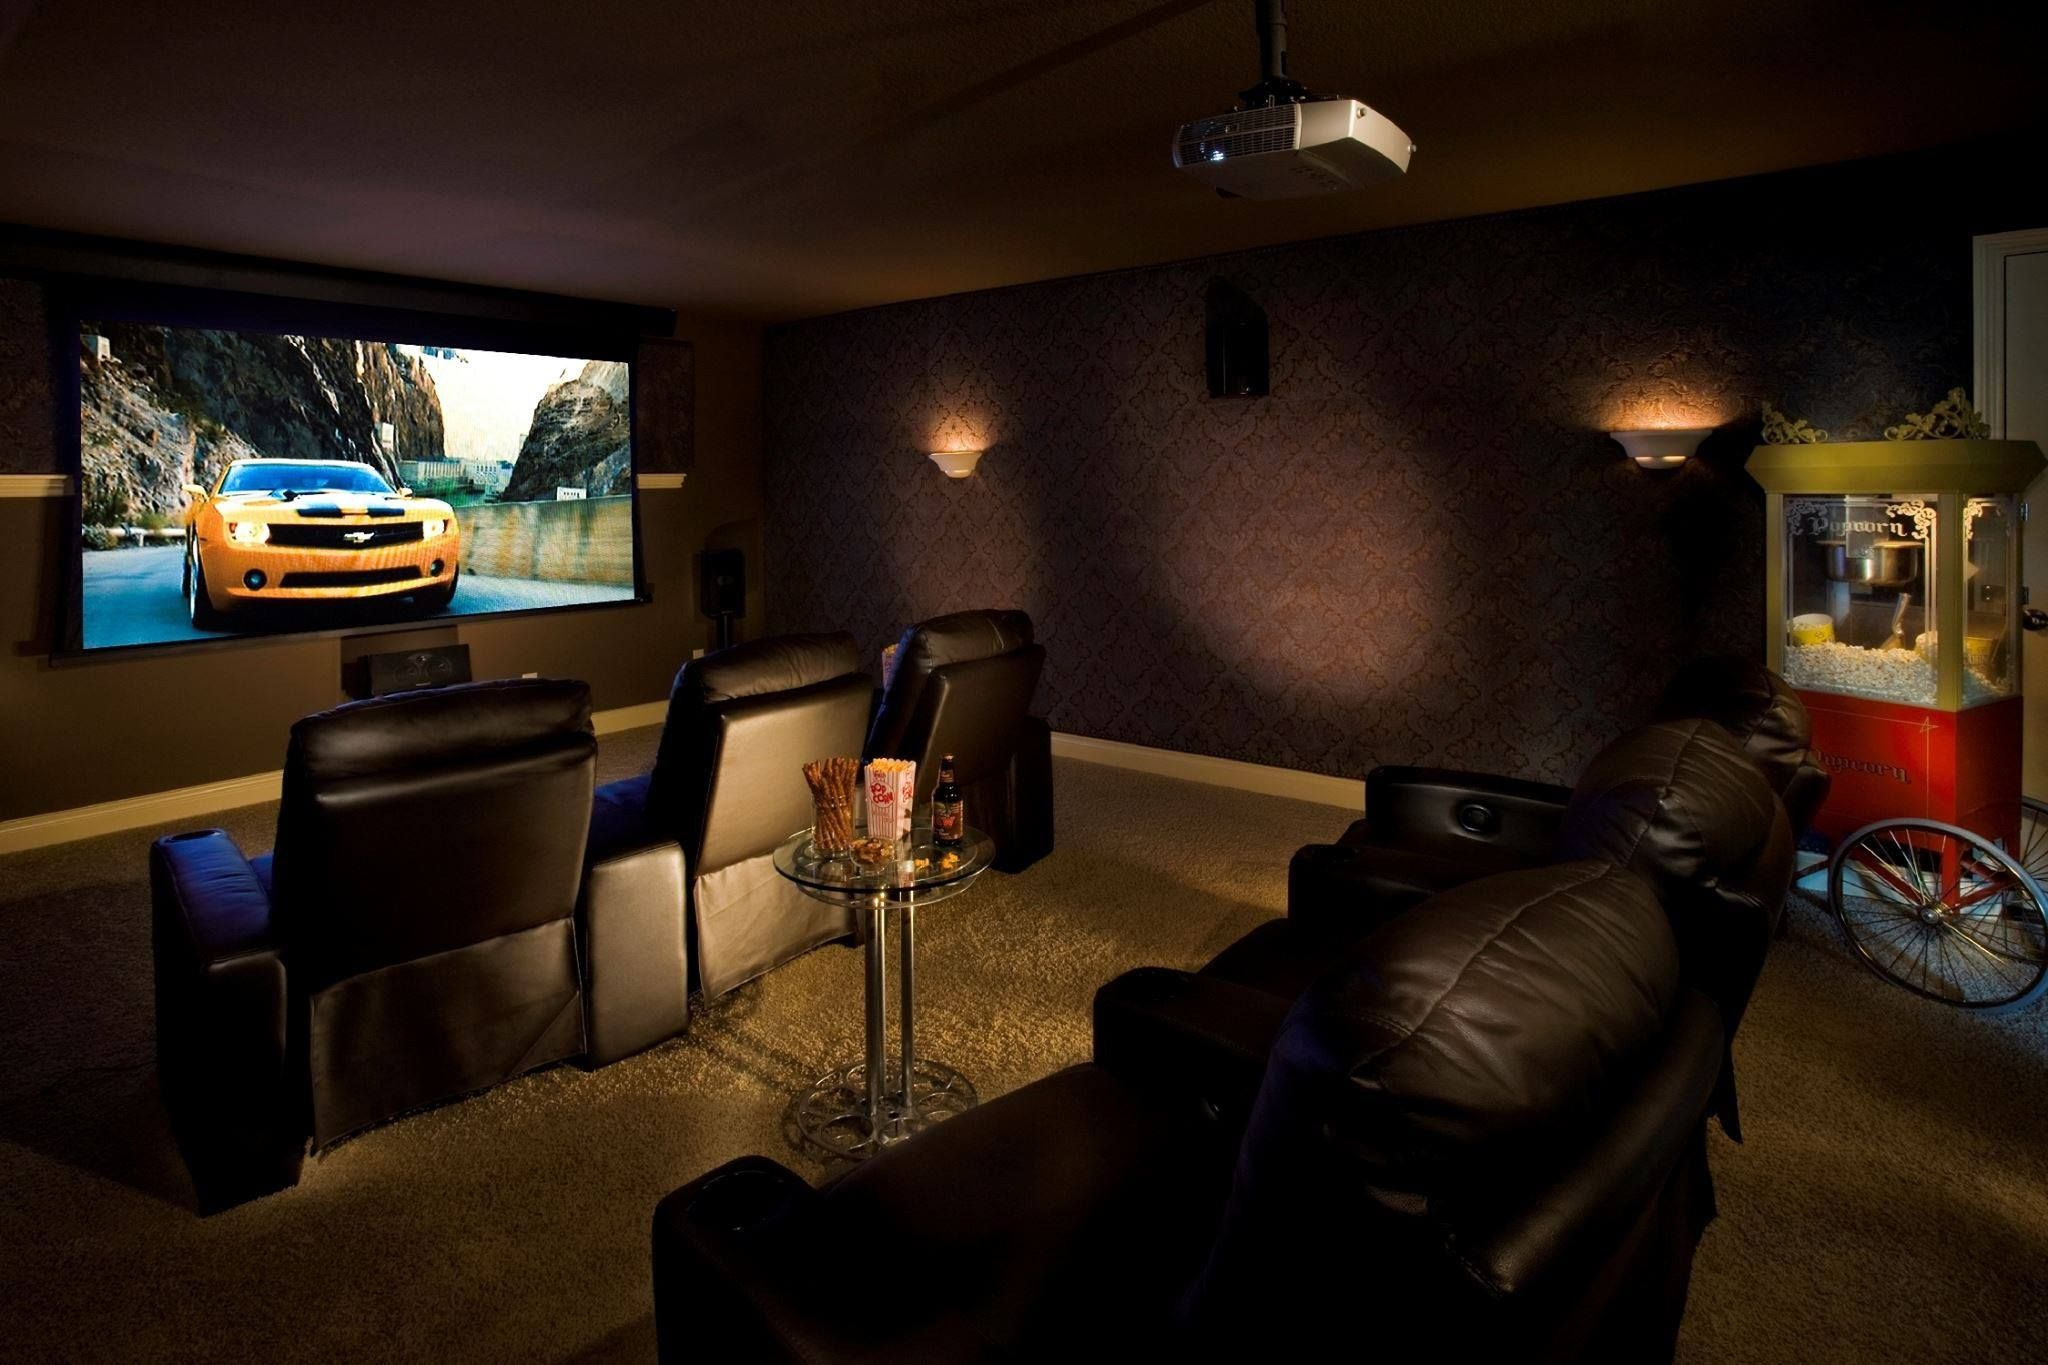 Man Cave Room Size : Make your family room or man cave the best in house with